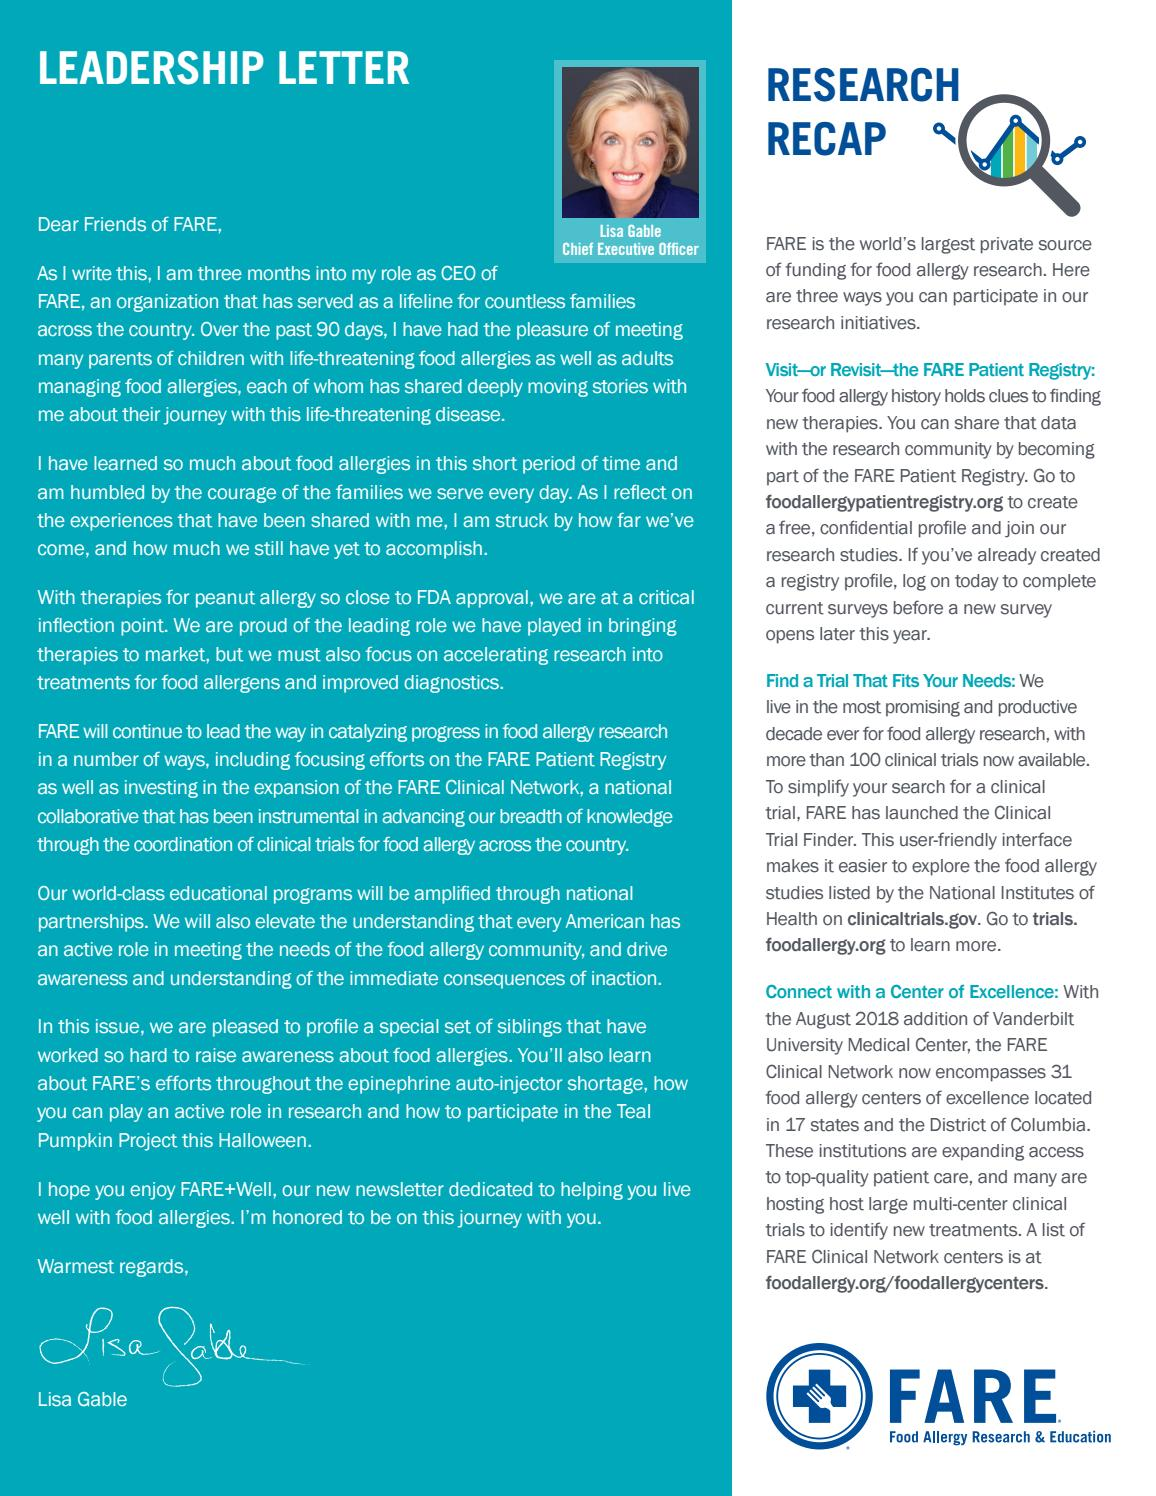 FARE+Well Newsletter - October 2018 by foodallergy - issuu